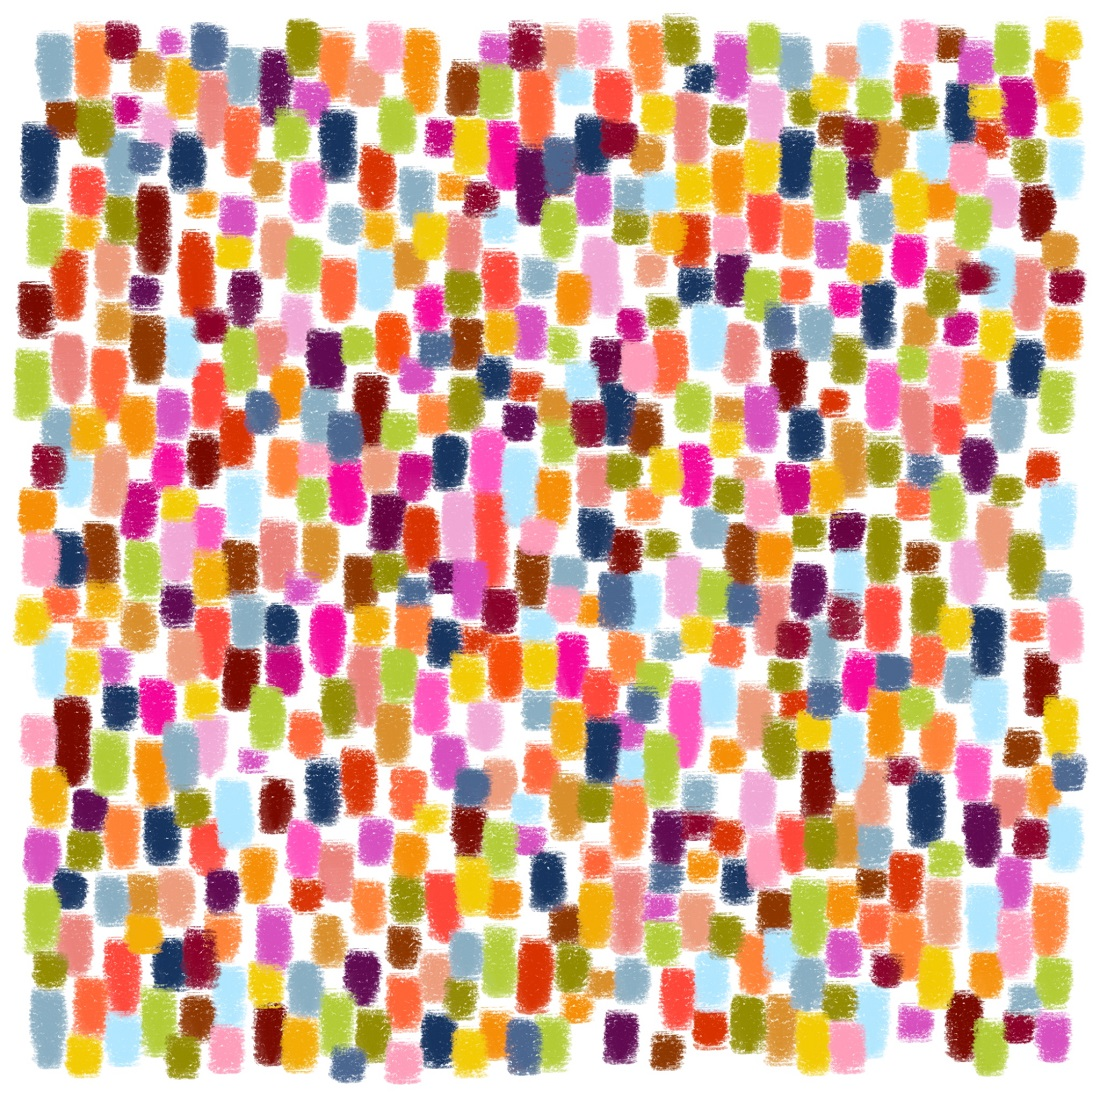 art prints - Abstract Watercolor Design by Lavender Brown